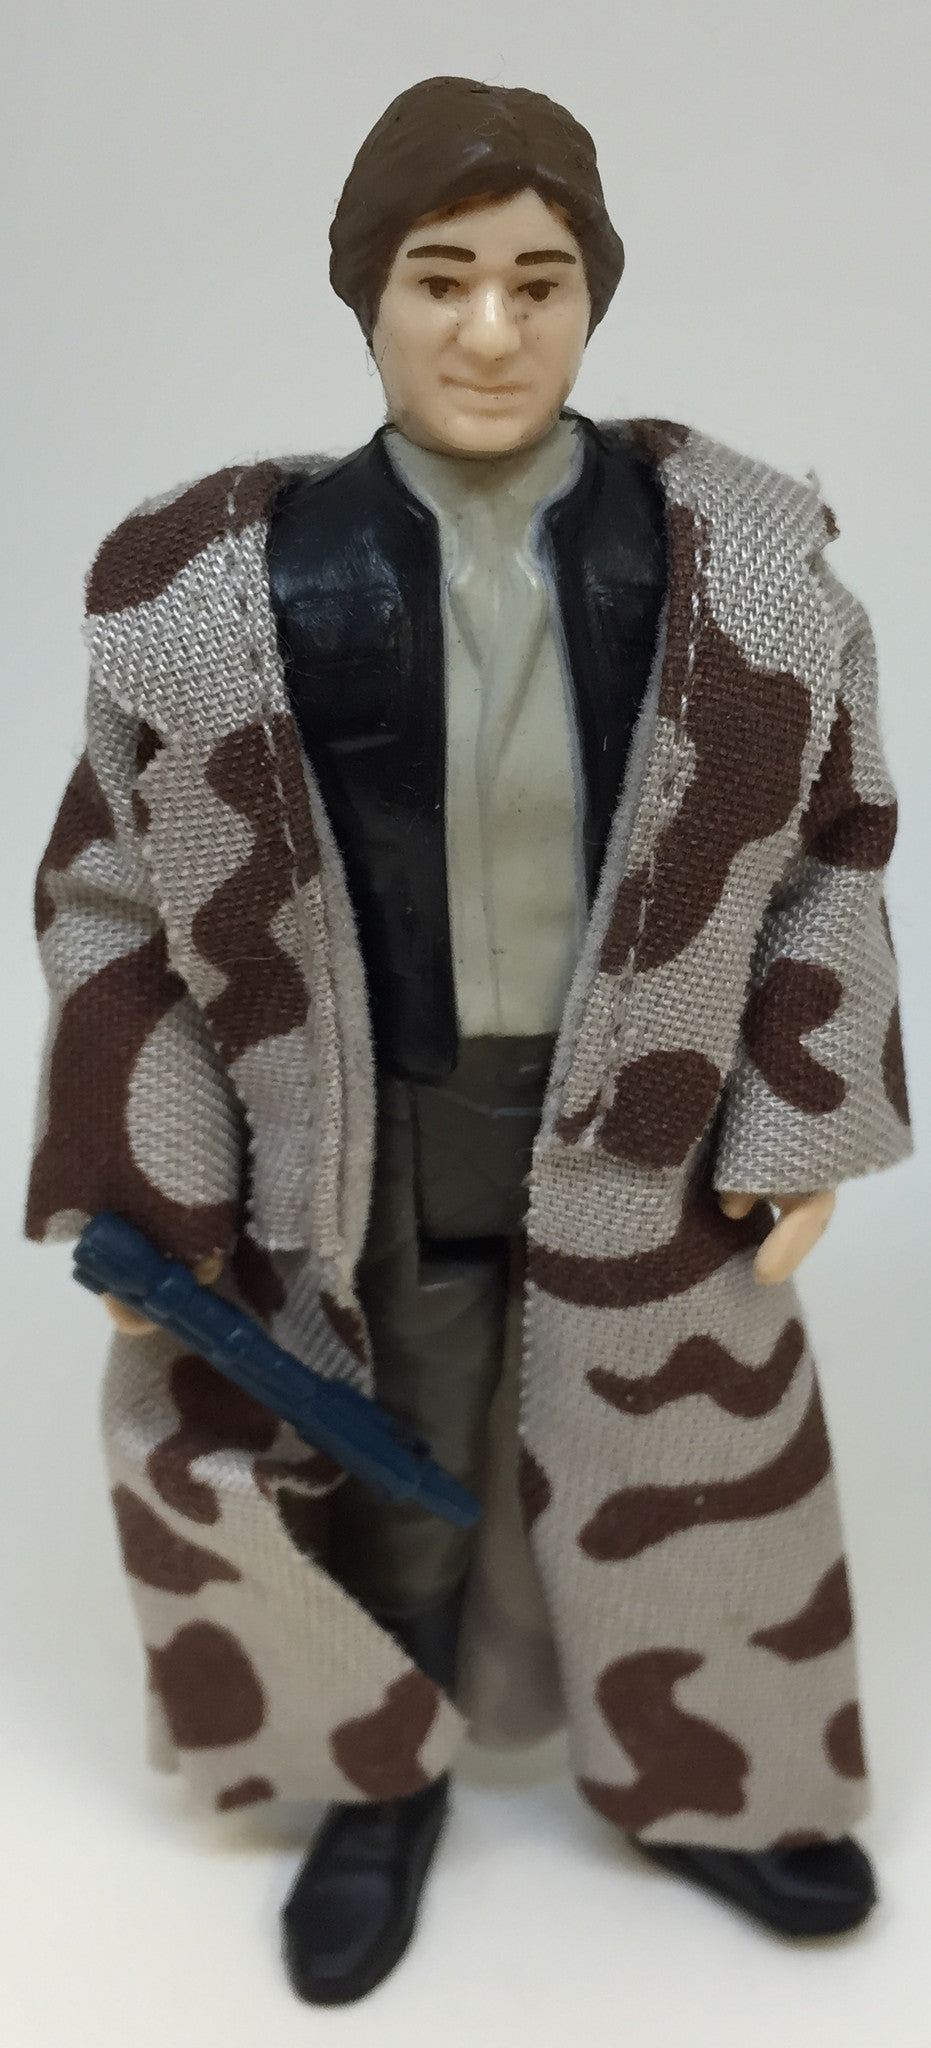 Vintage Star Wars Loose Han Solo (Trenchcoat) Kenner Action Figure